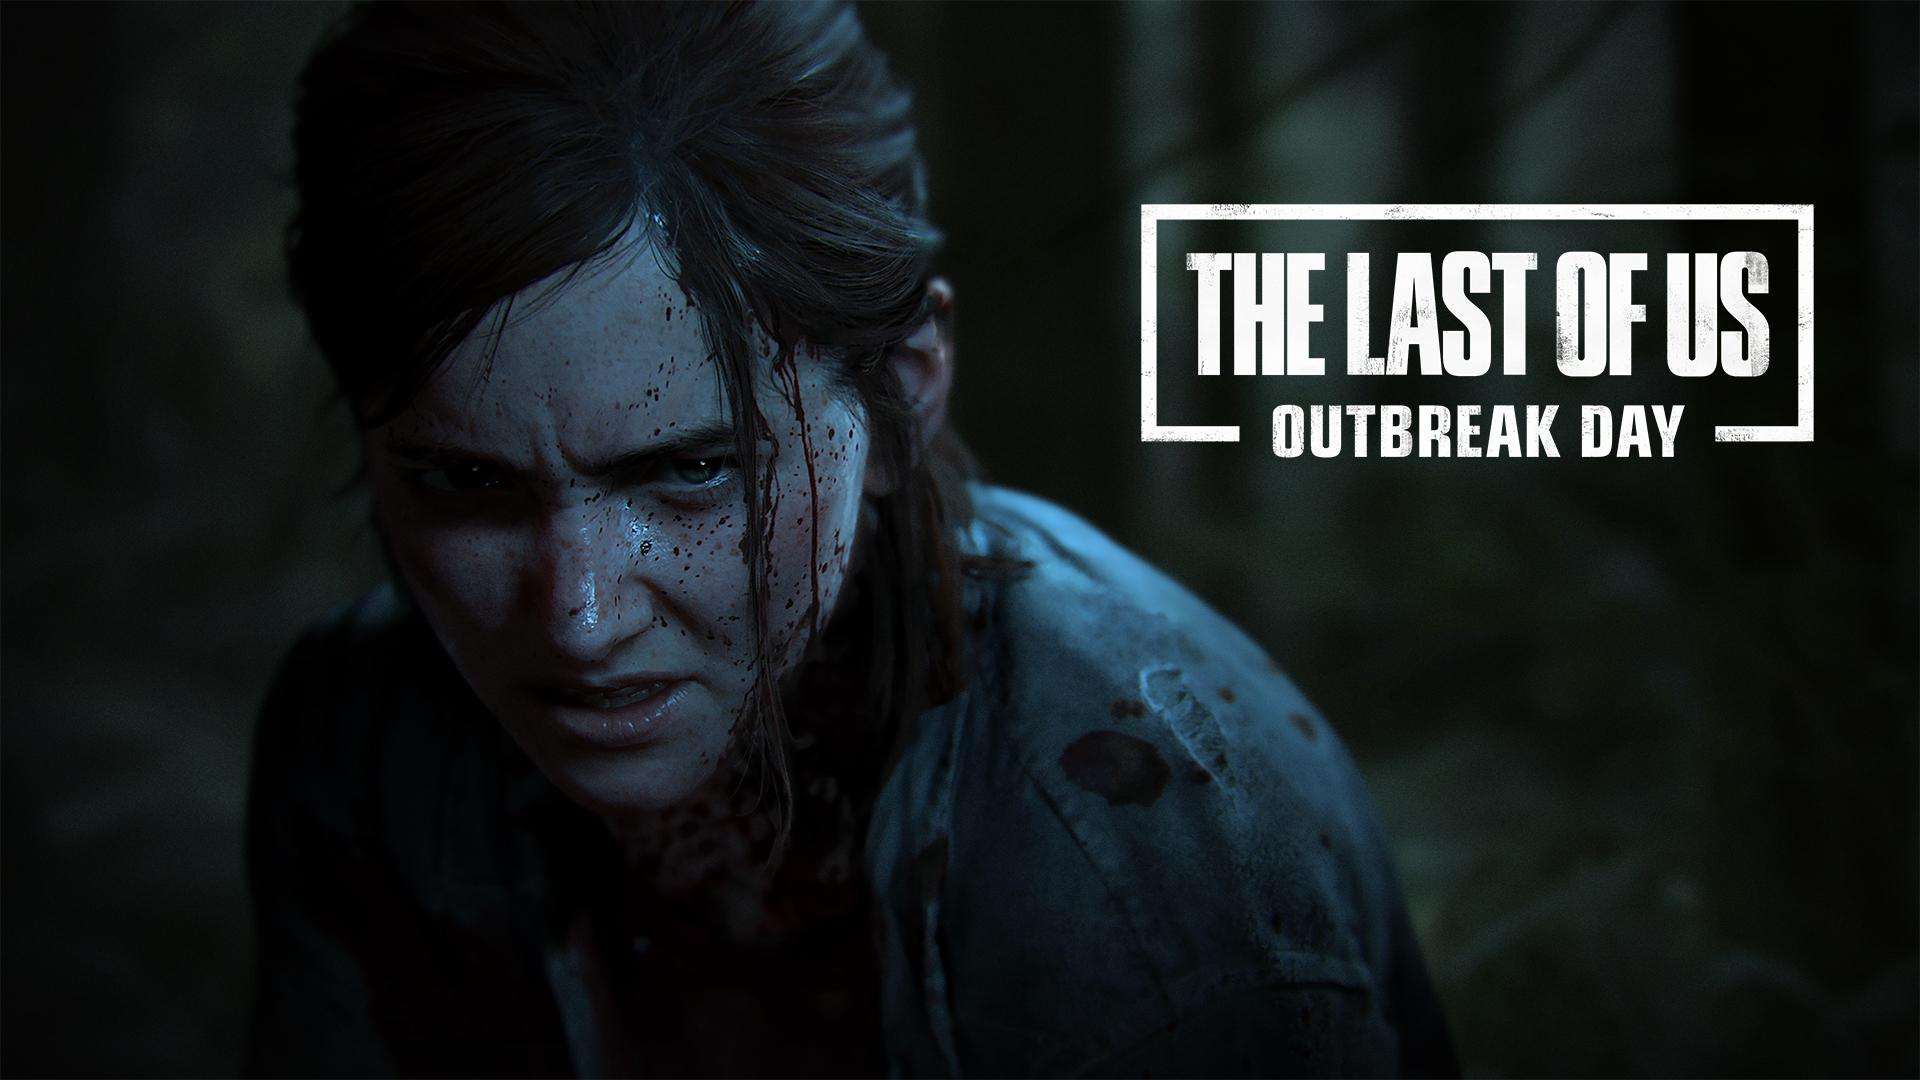 The Last of Us Part II Poster featuring Ellie bearing her teeth.